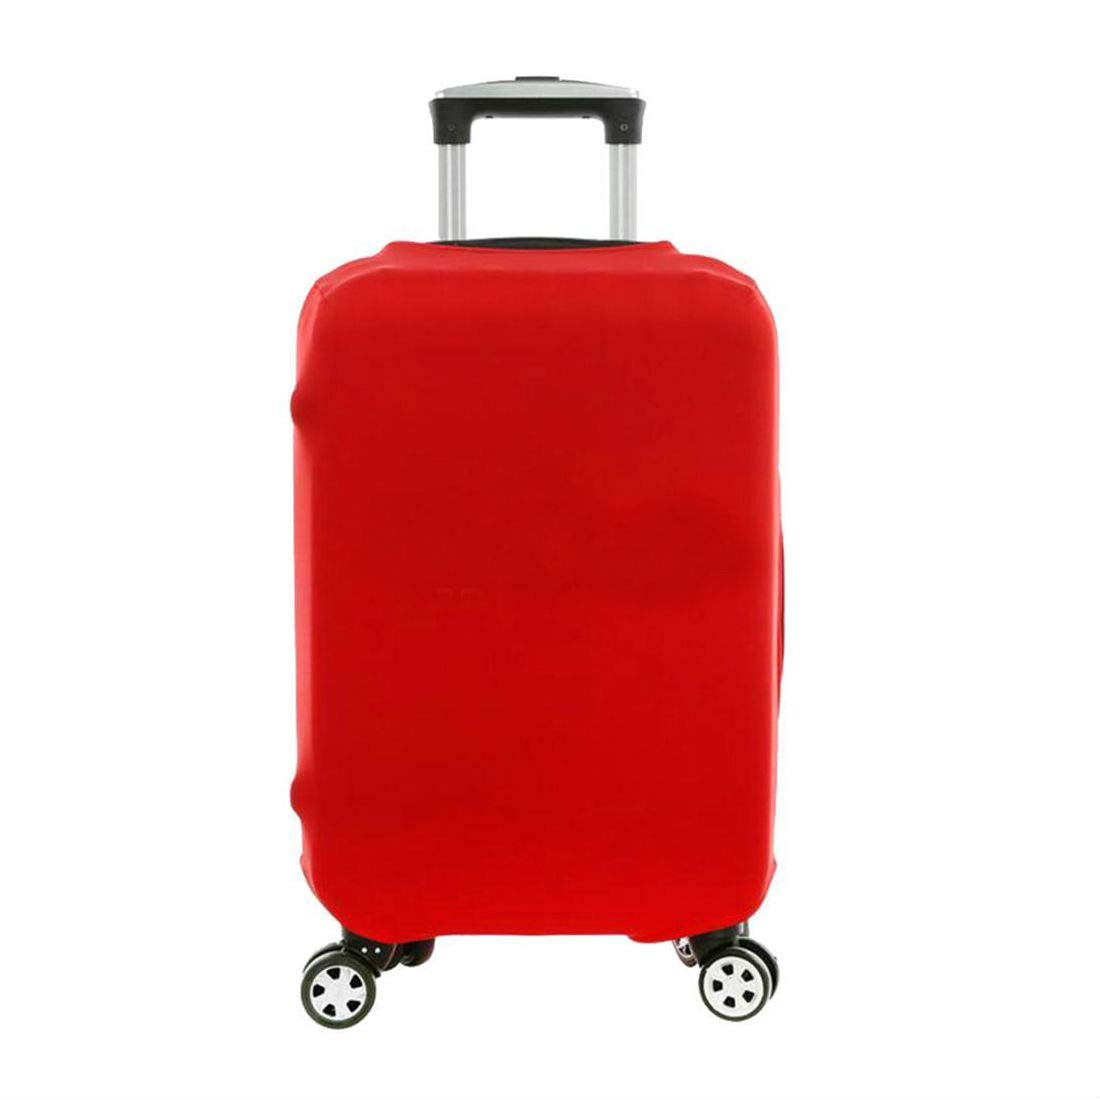 Red Elastic Luggage Suitcase Bags Cover Protector Anti scratch 18'' 20'' 22'' 24'' 28'' (L - (26''-30''))